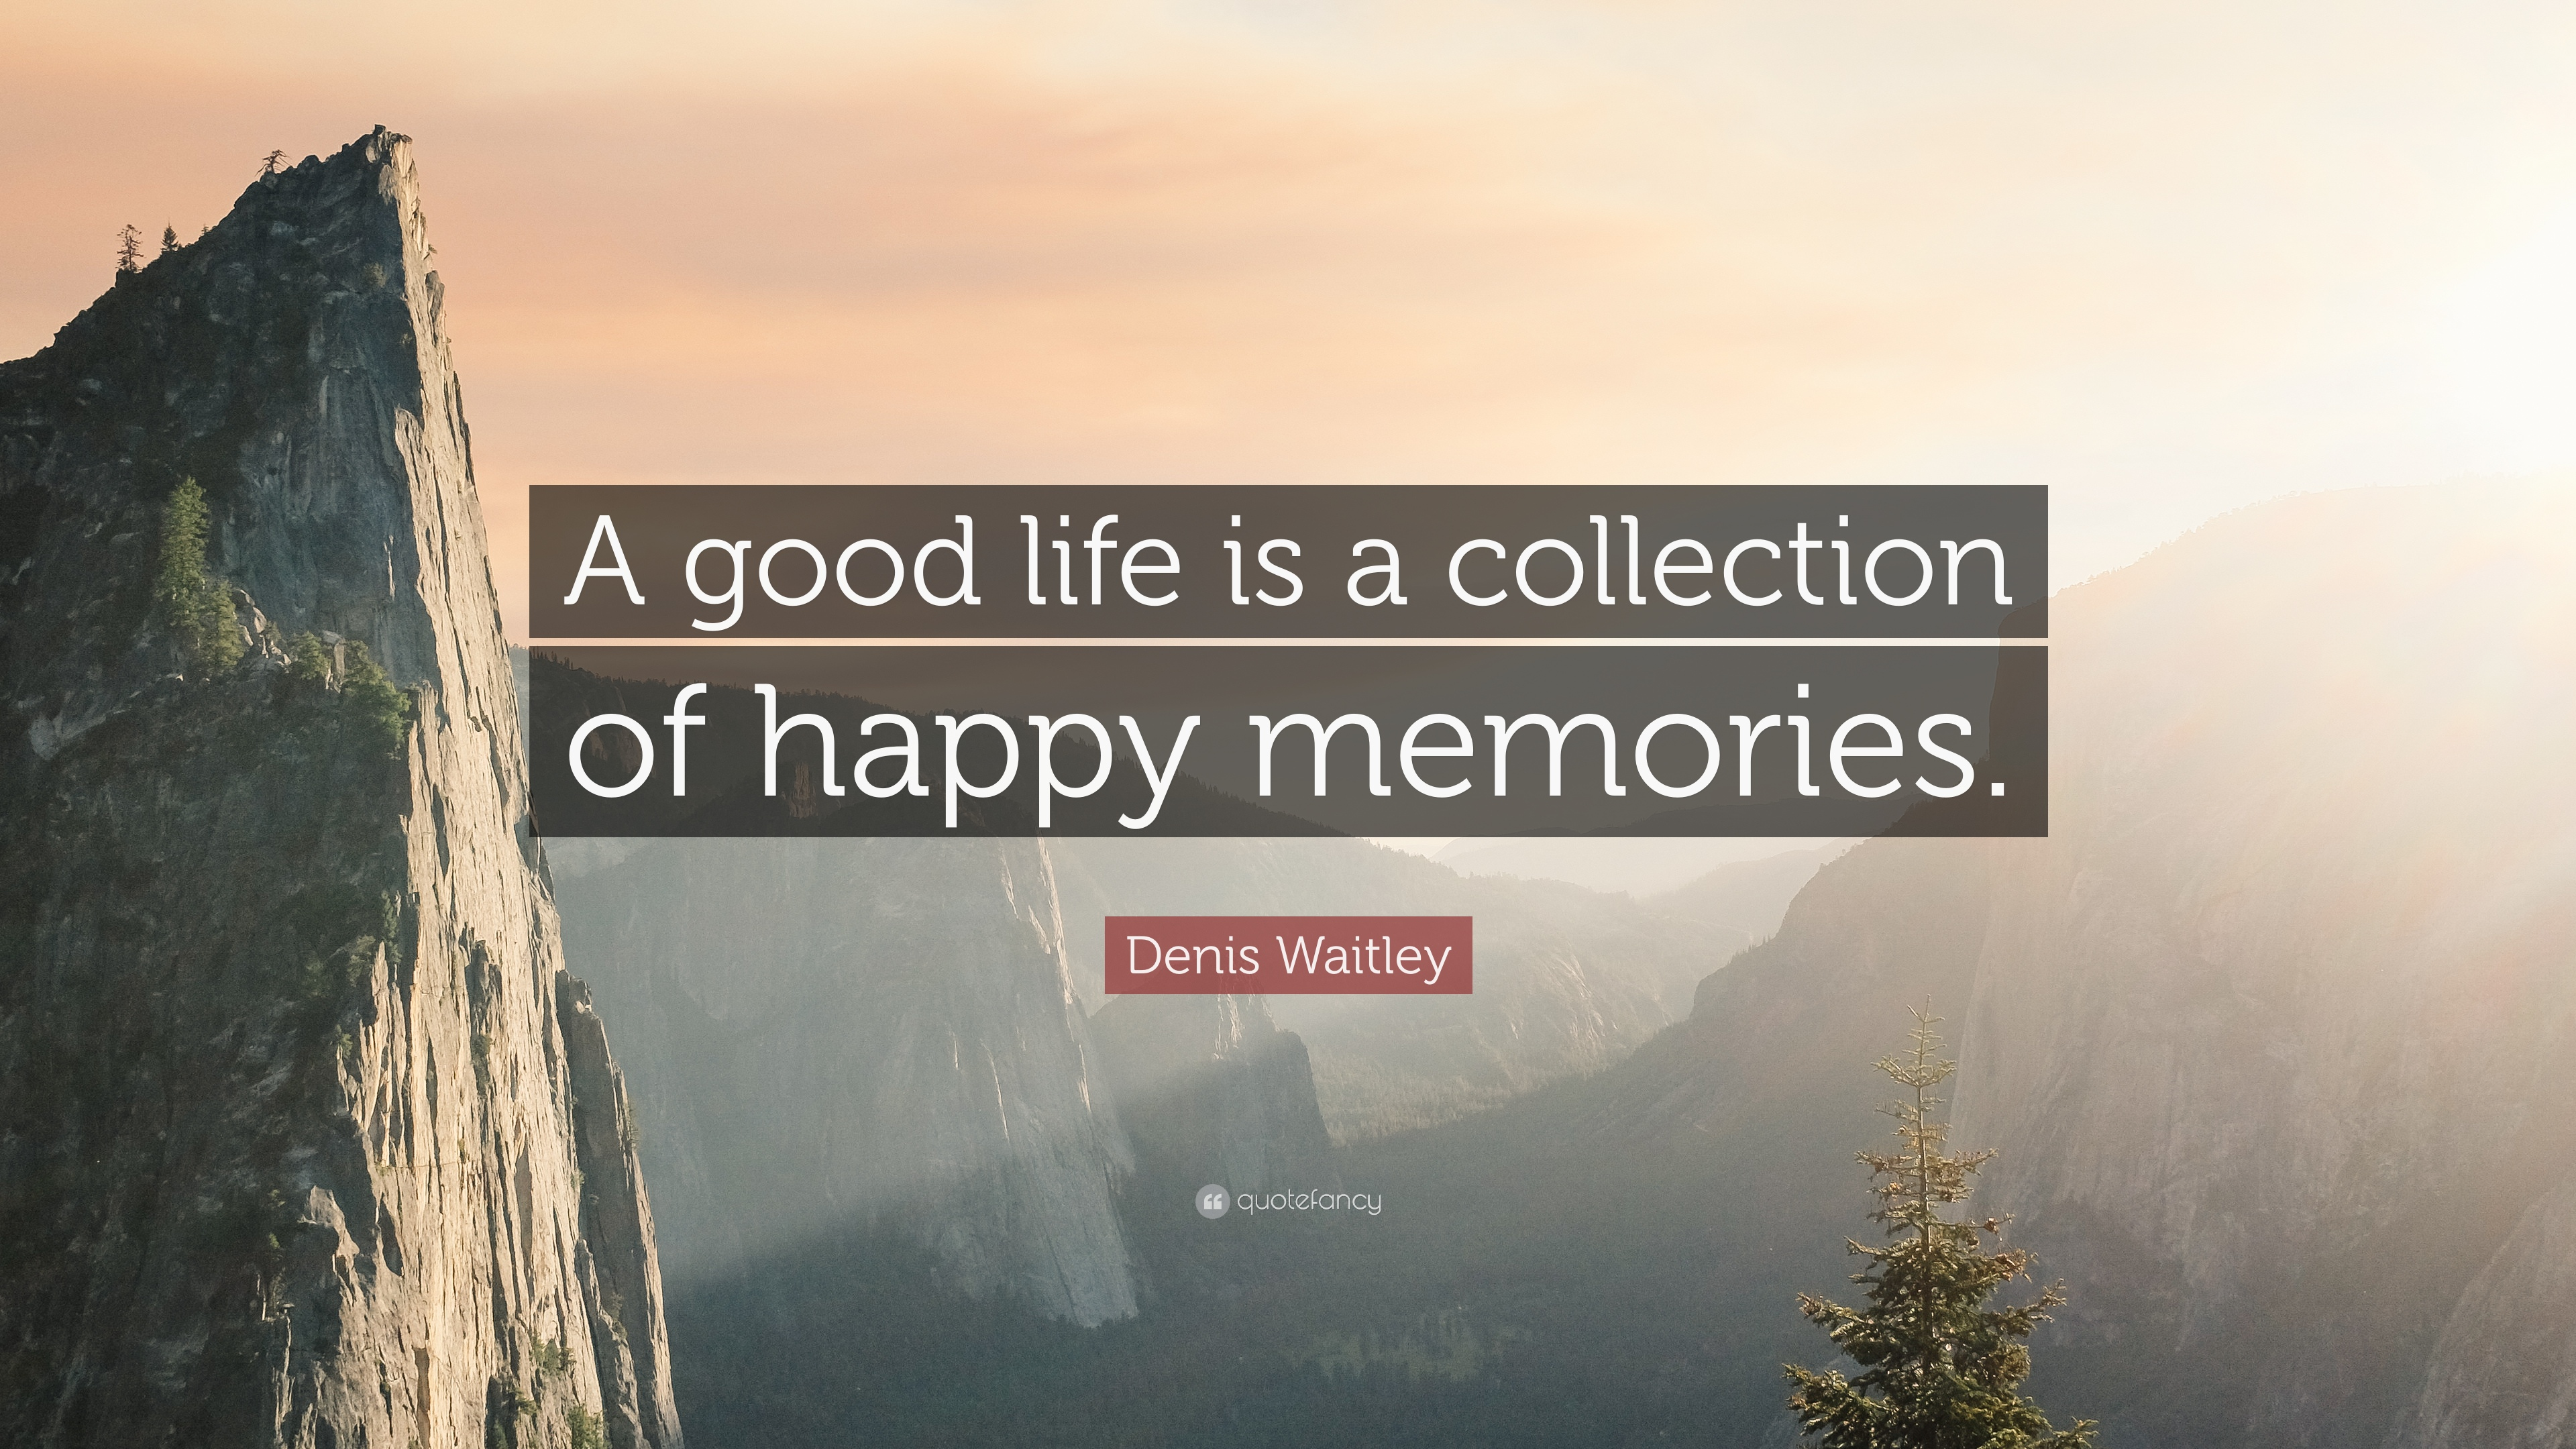 Happy Life Quotes Wallpaper Quotes About Memories 40 Wallpapers Quotefancy